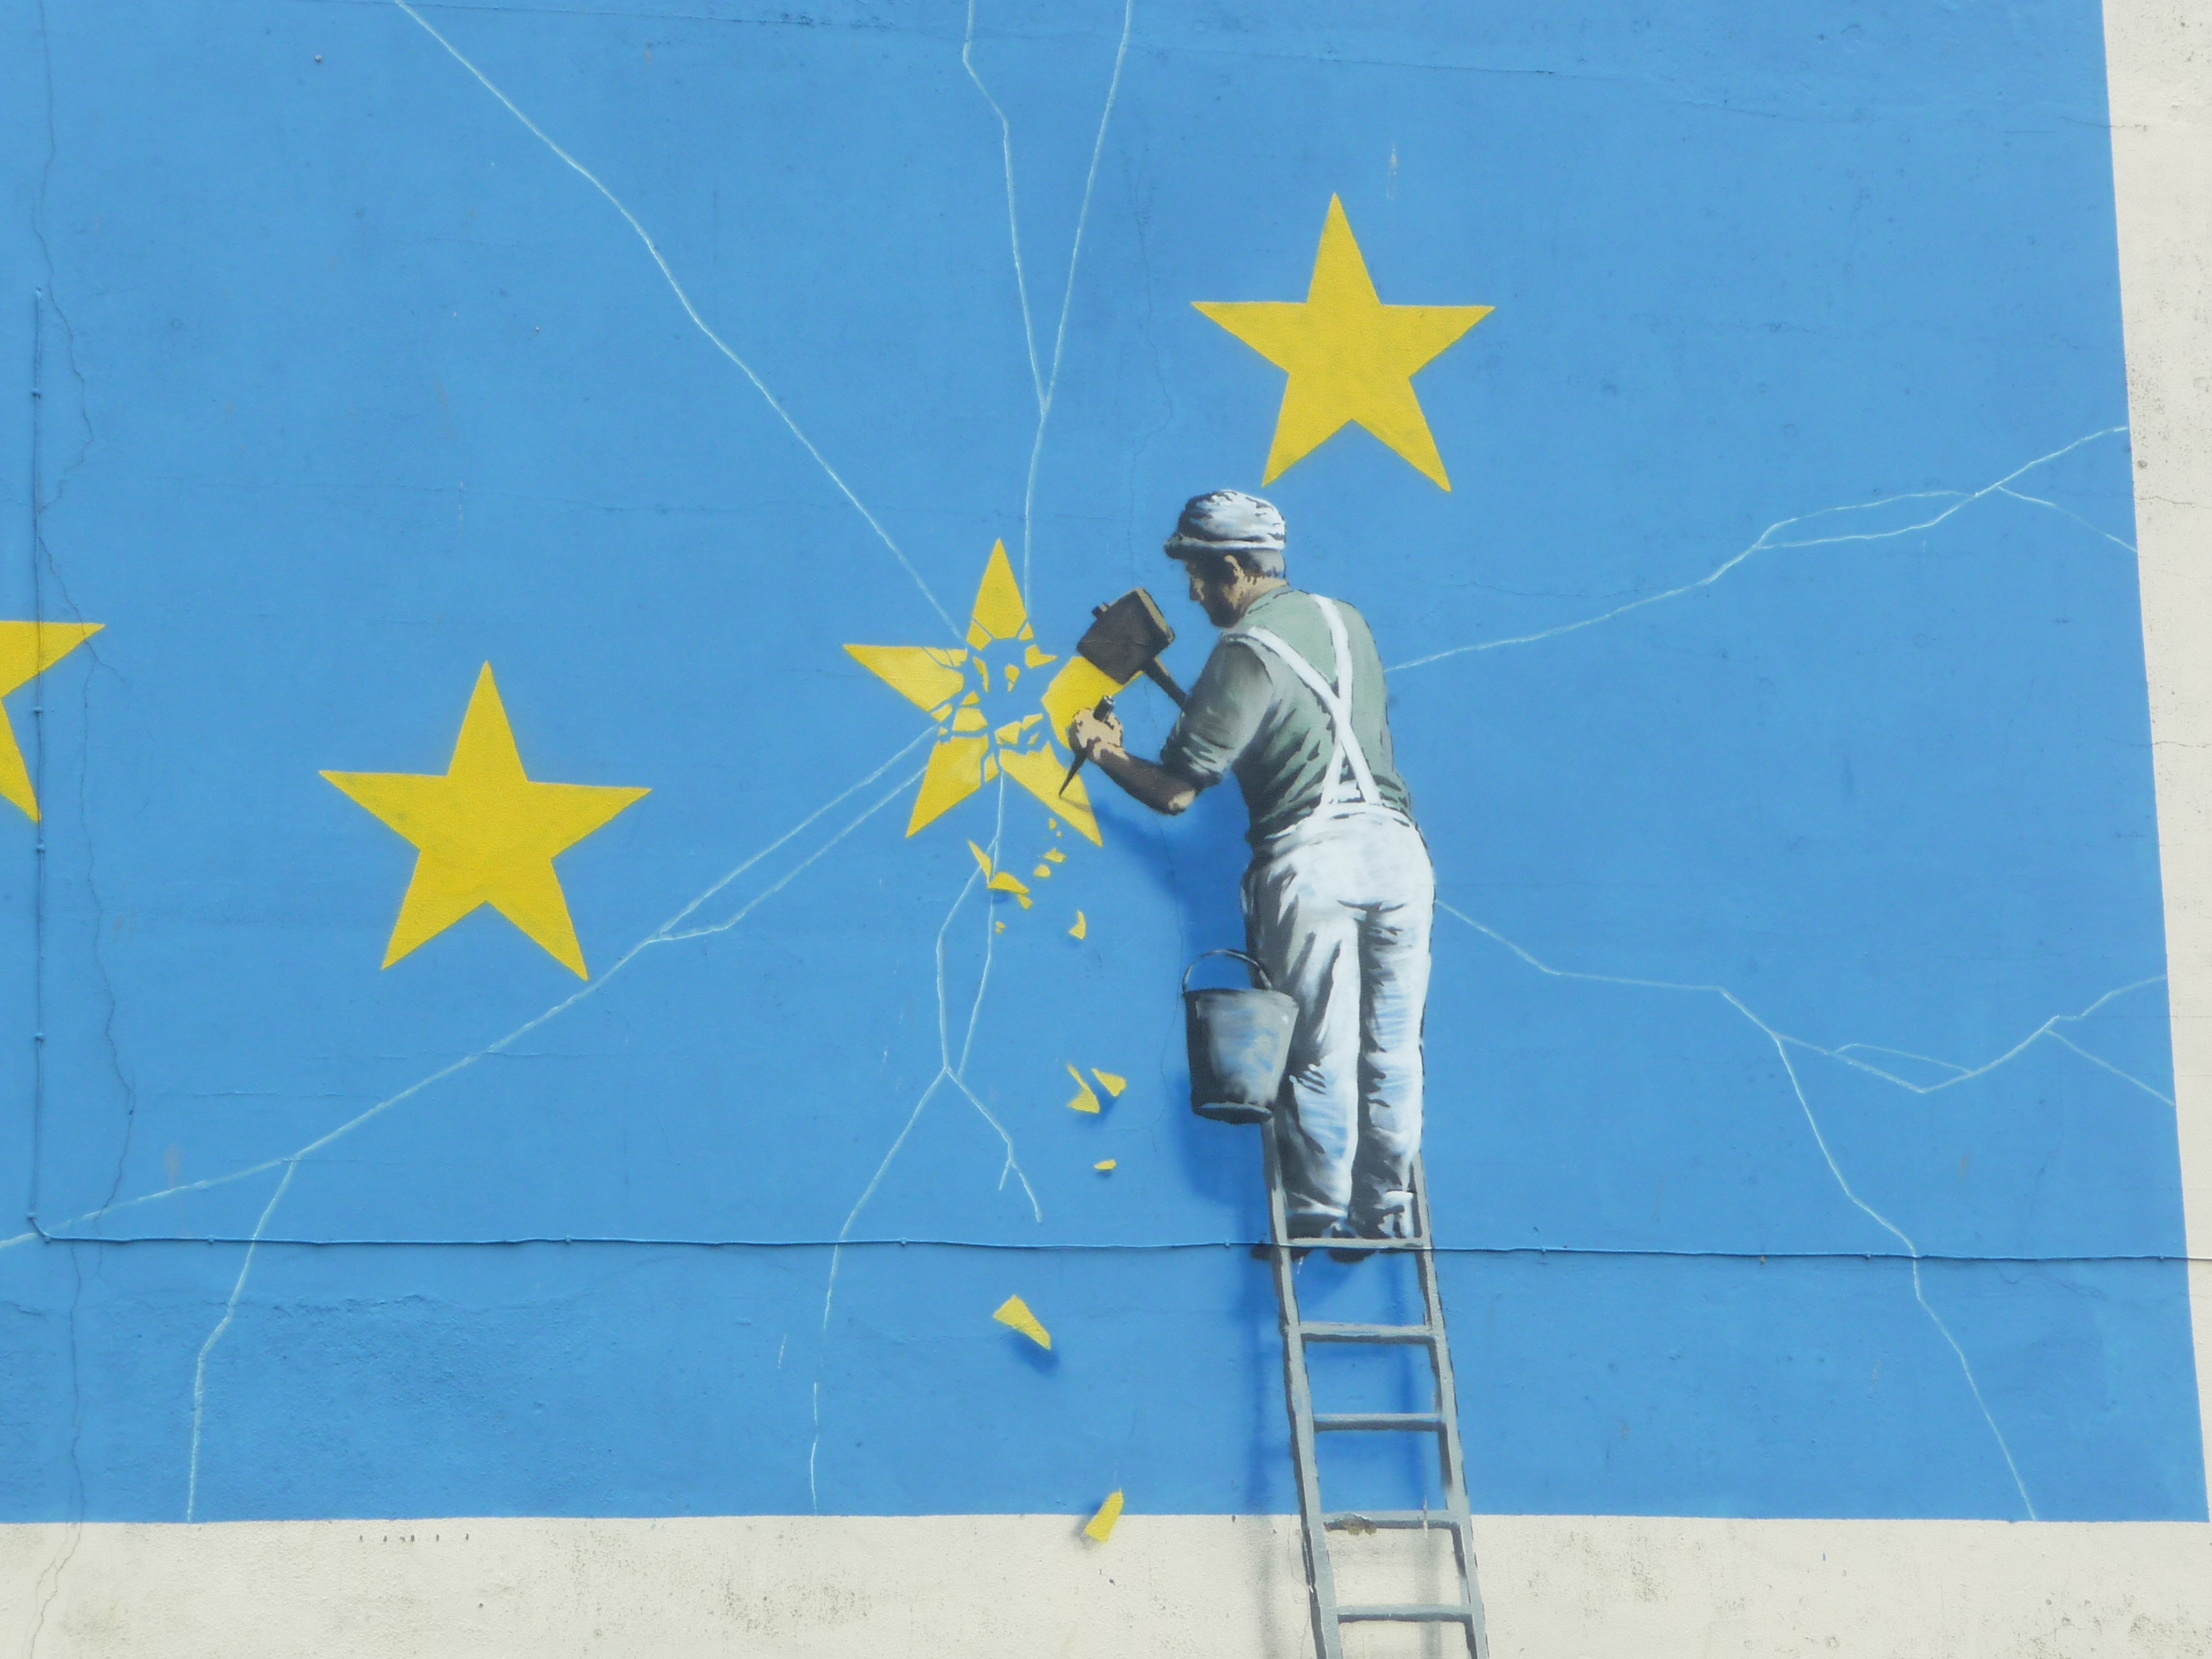 Getting Business-Ready for Brexit - How to Thrive During a Downturn